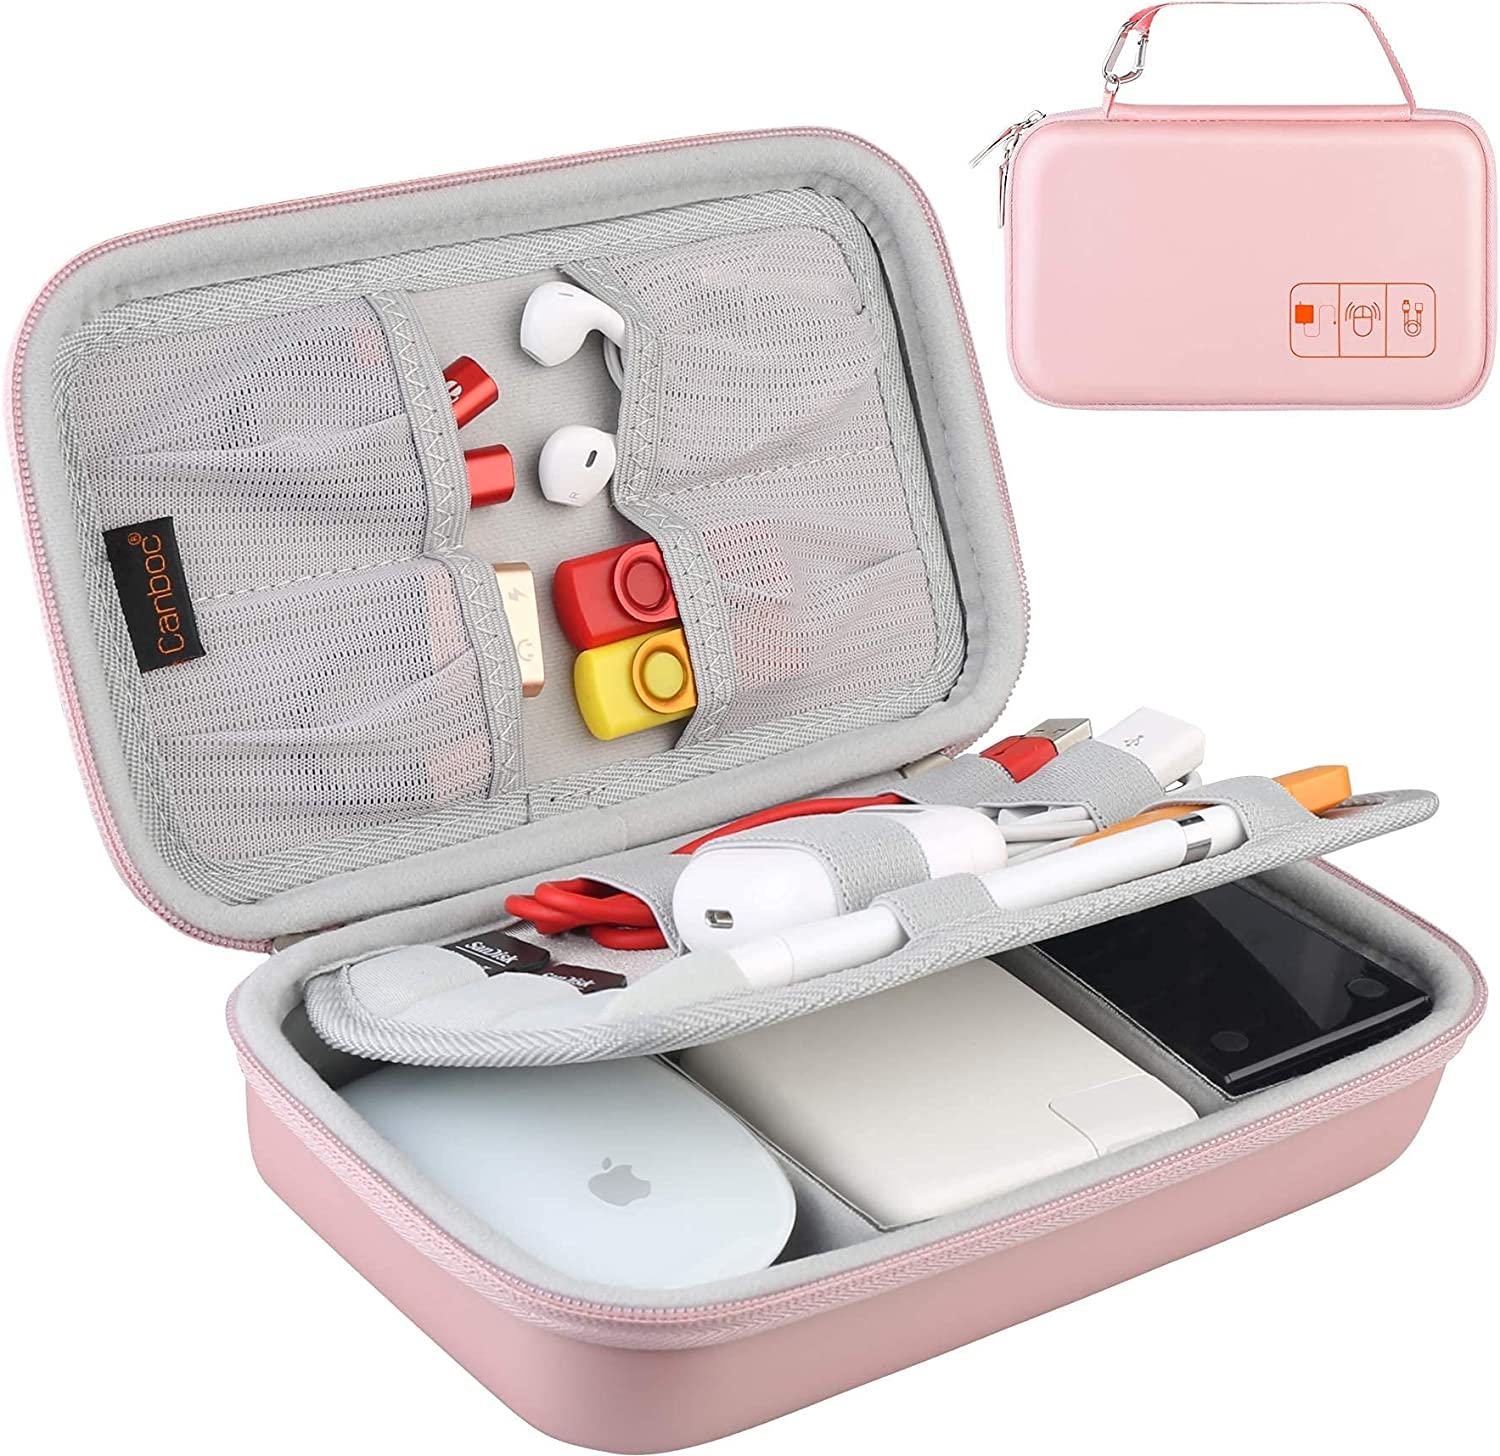 Hard Electronic Organizer Travel Case Electronics Accessories Cable Gadget Wire Storage Bag Double Layer Shockproof Box for Charger, Cord, Flash Drive, Apple Pencil, Power Bank, Rose Gold